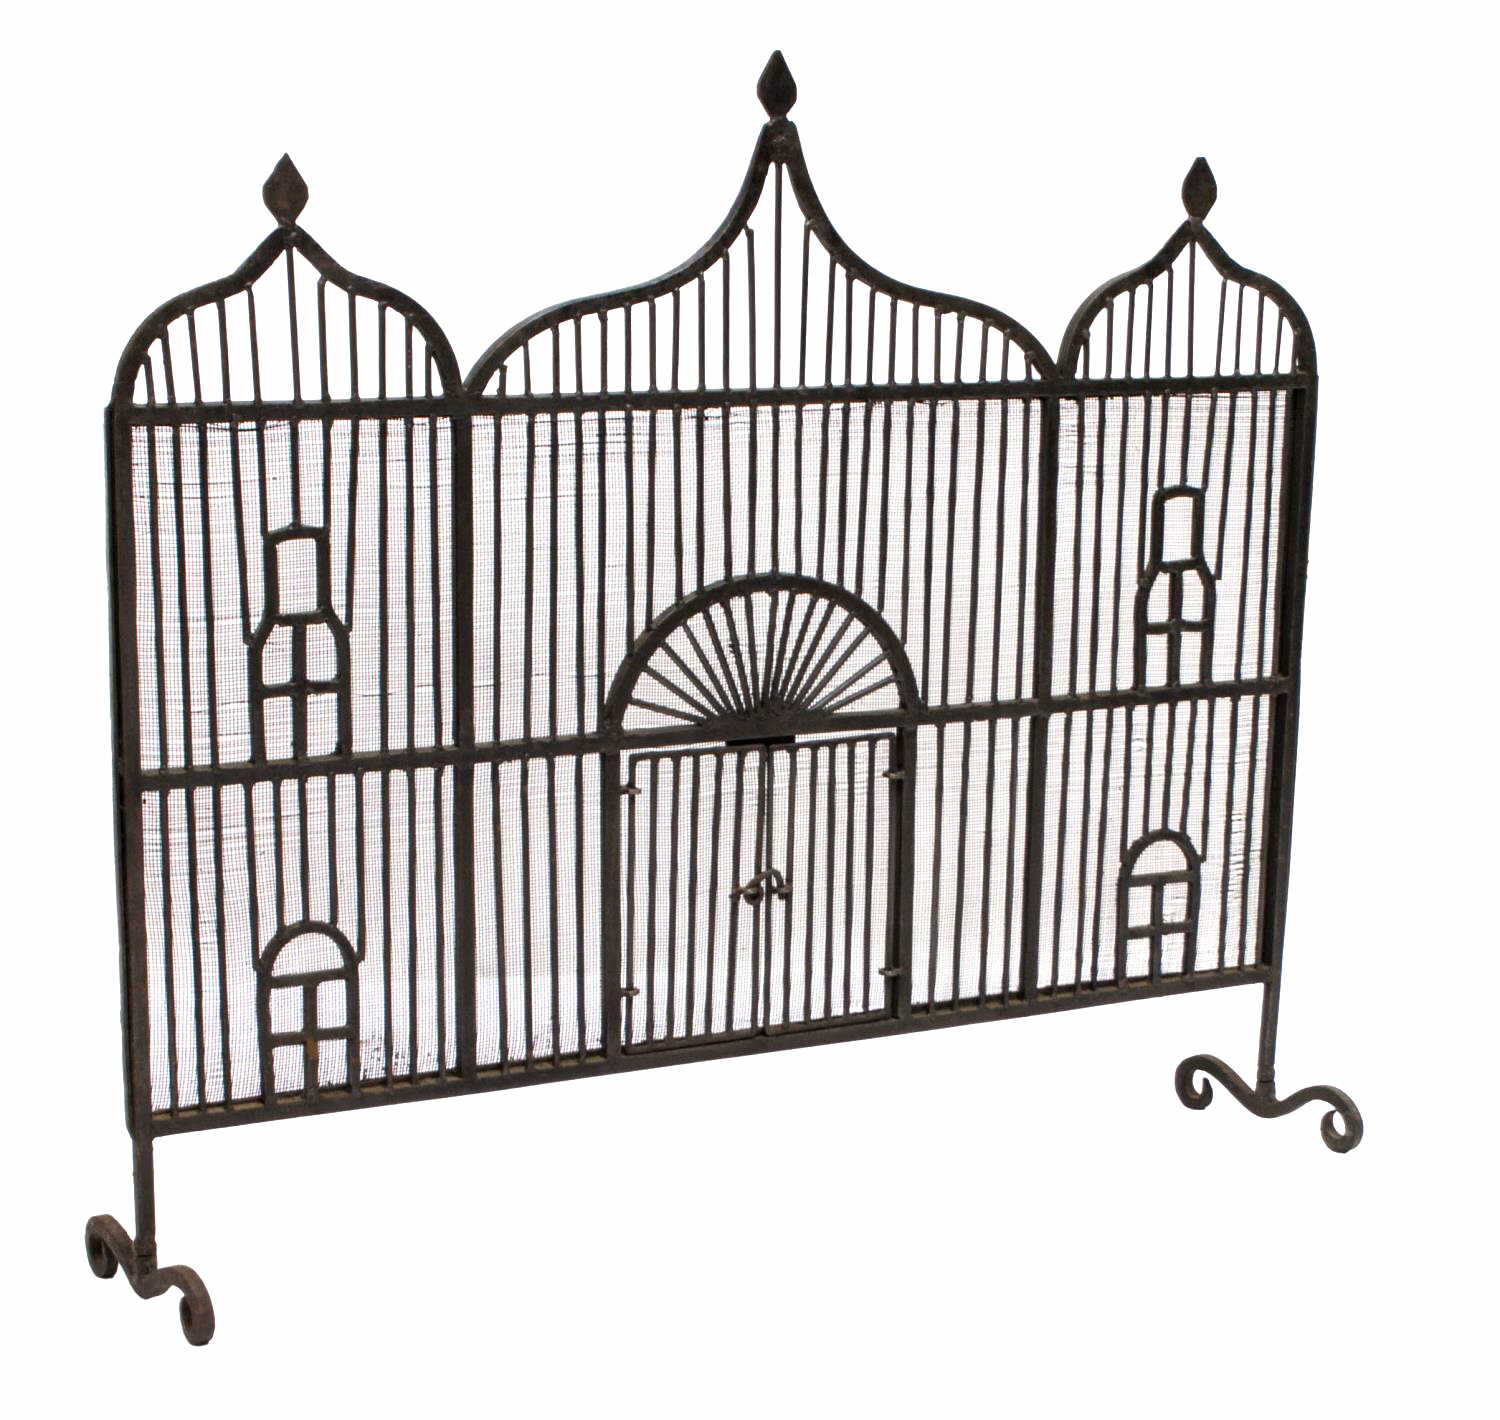 Forged Iron Fireplace Screen : Hand forged wrought iron ogee fire screen holiday